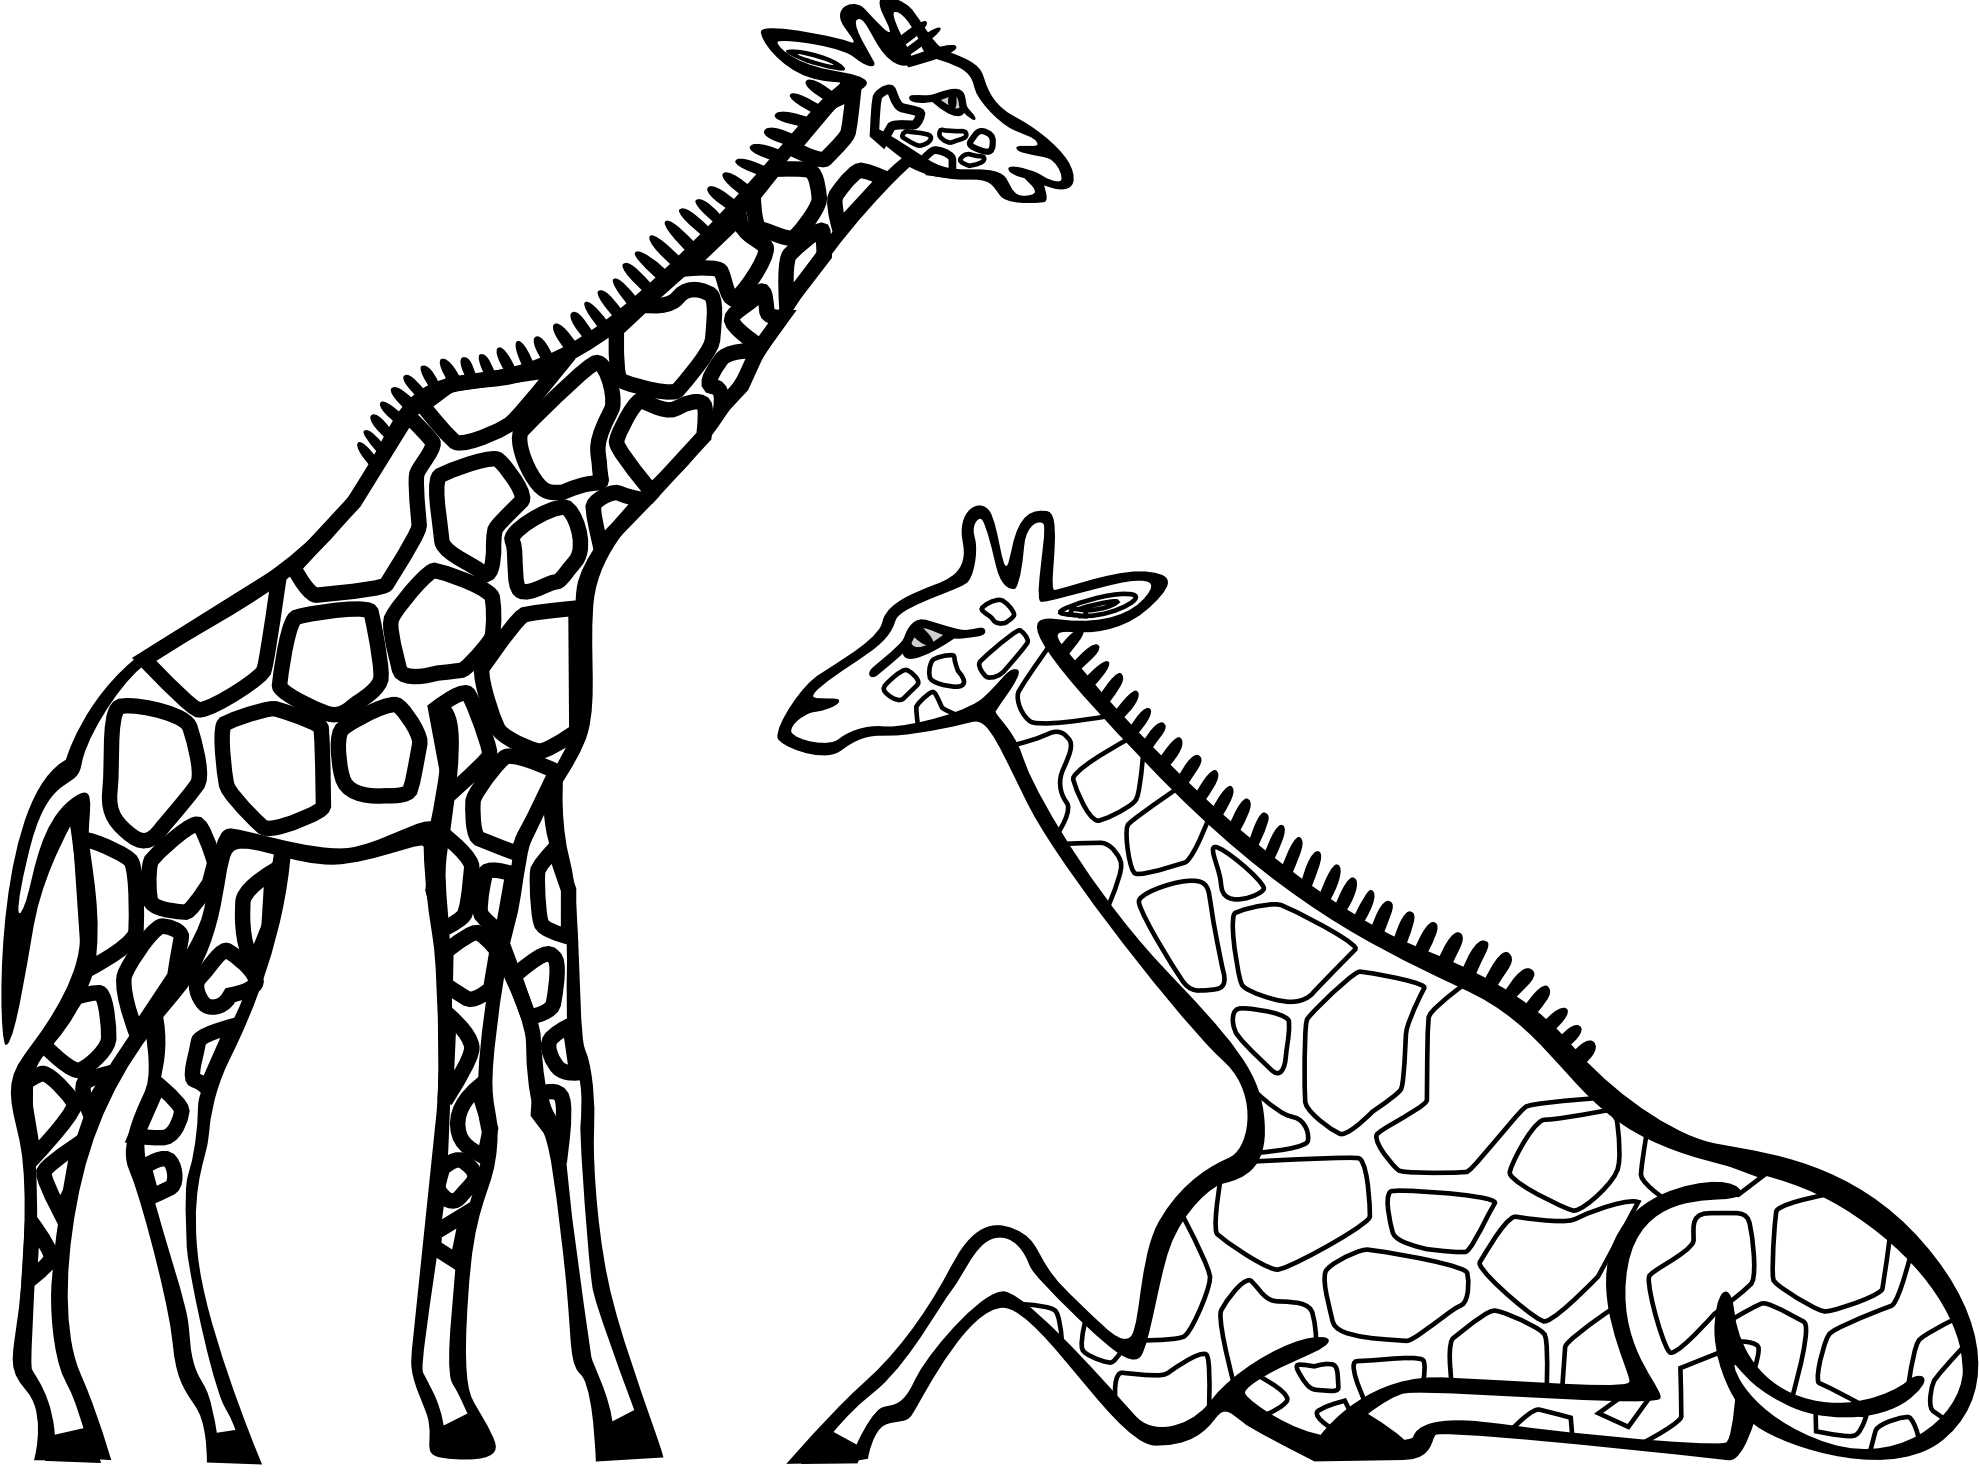 Giraffe Clipart Black And Whi - Zebra Clipart Black And White